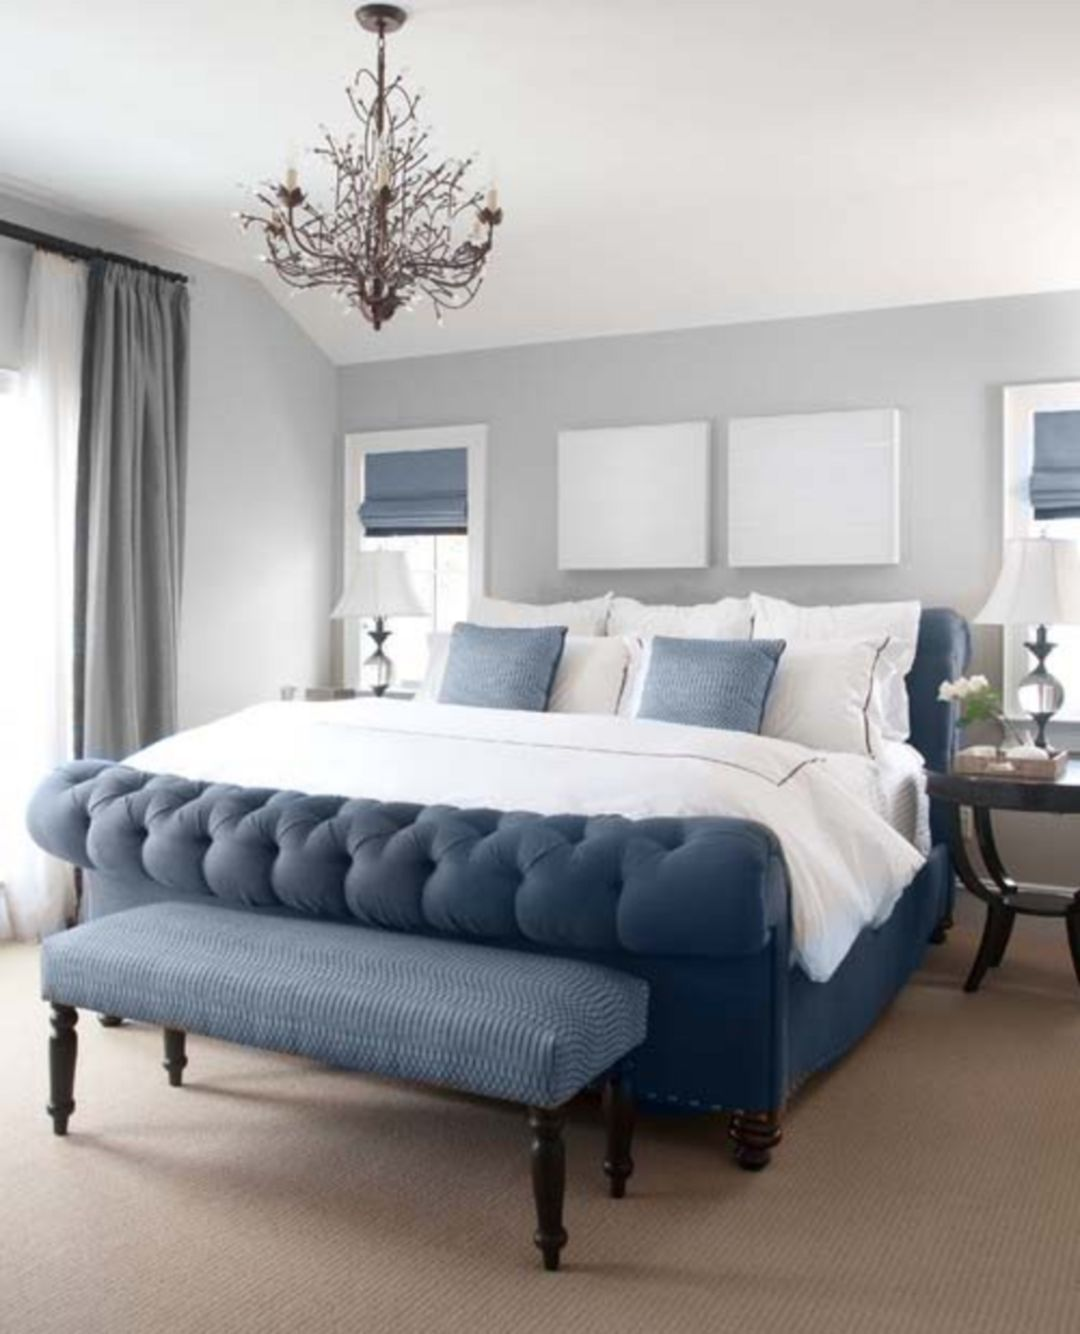 Master bedroom navy blue   Cool Navy And White Bedroom Design Ideas To Make Your Bedroom